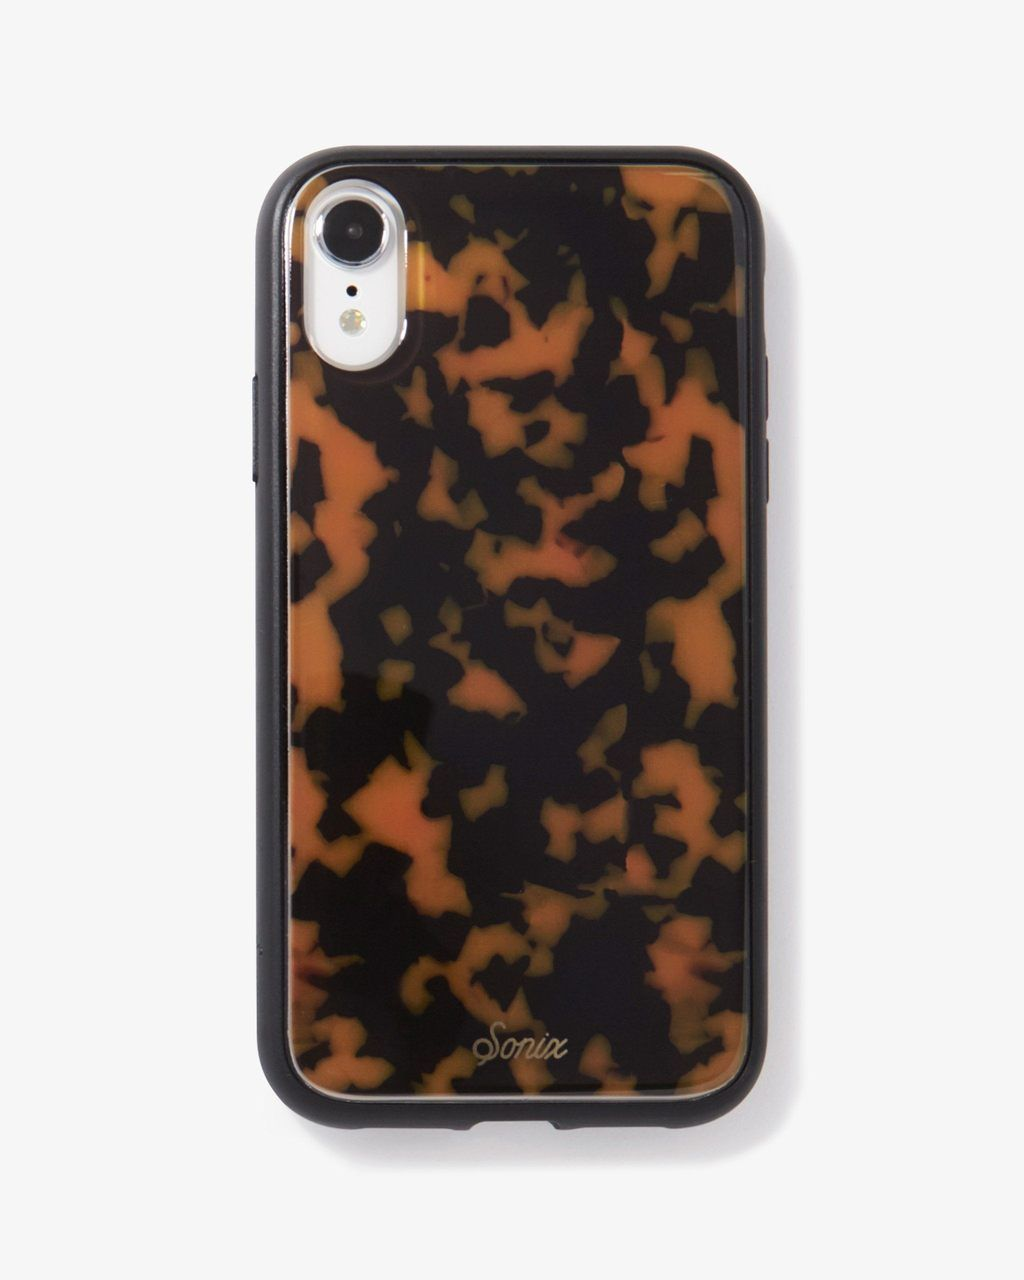 Brown tort iphone xr iphone iphone cases sonix case